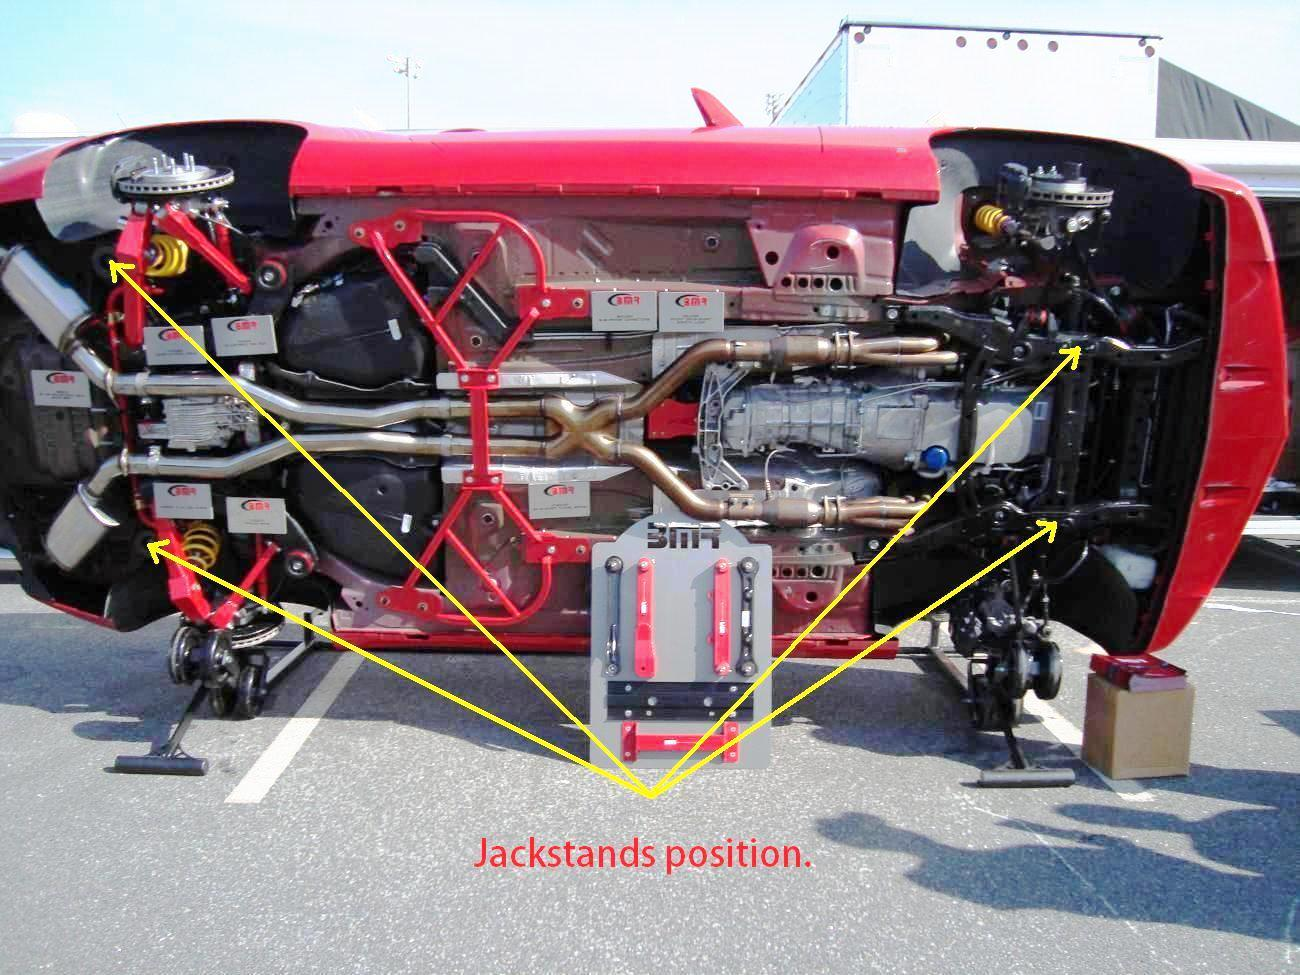 Attachment also Corre in addition D Eye Candy Bad Vette further D What Jack Points Do You Use Jackpoints moreover Chevrolet Colorado Fuse Box Diagram Engine  partment. on starter location on 2008 chevy colorado